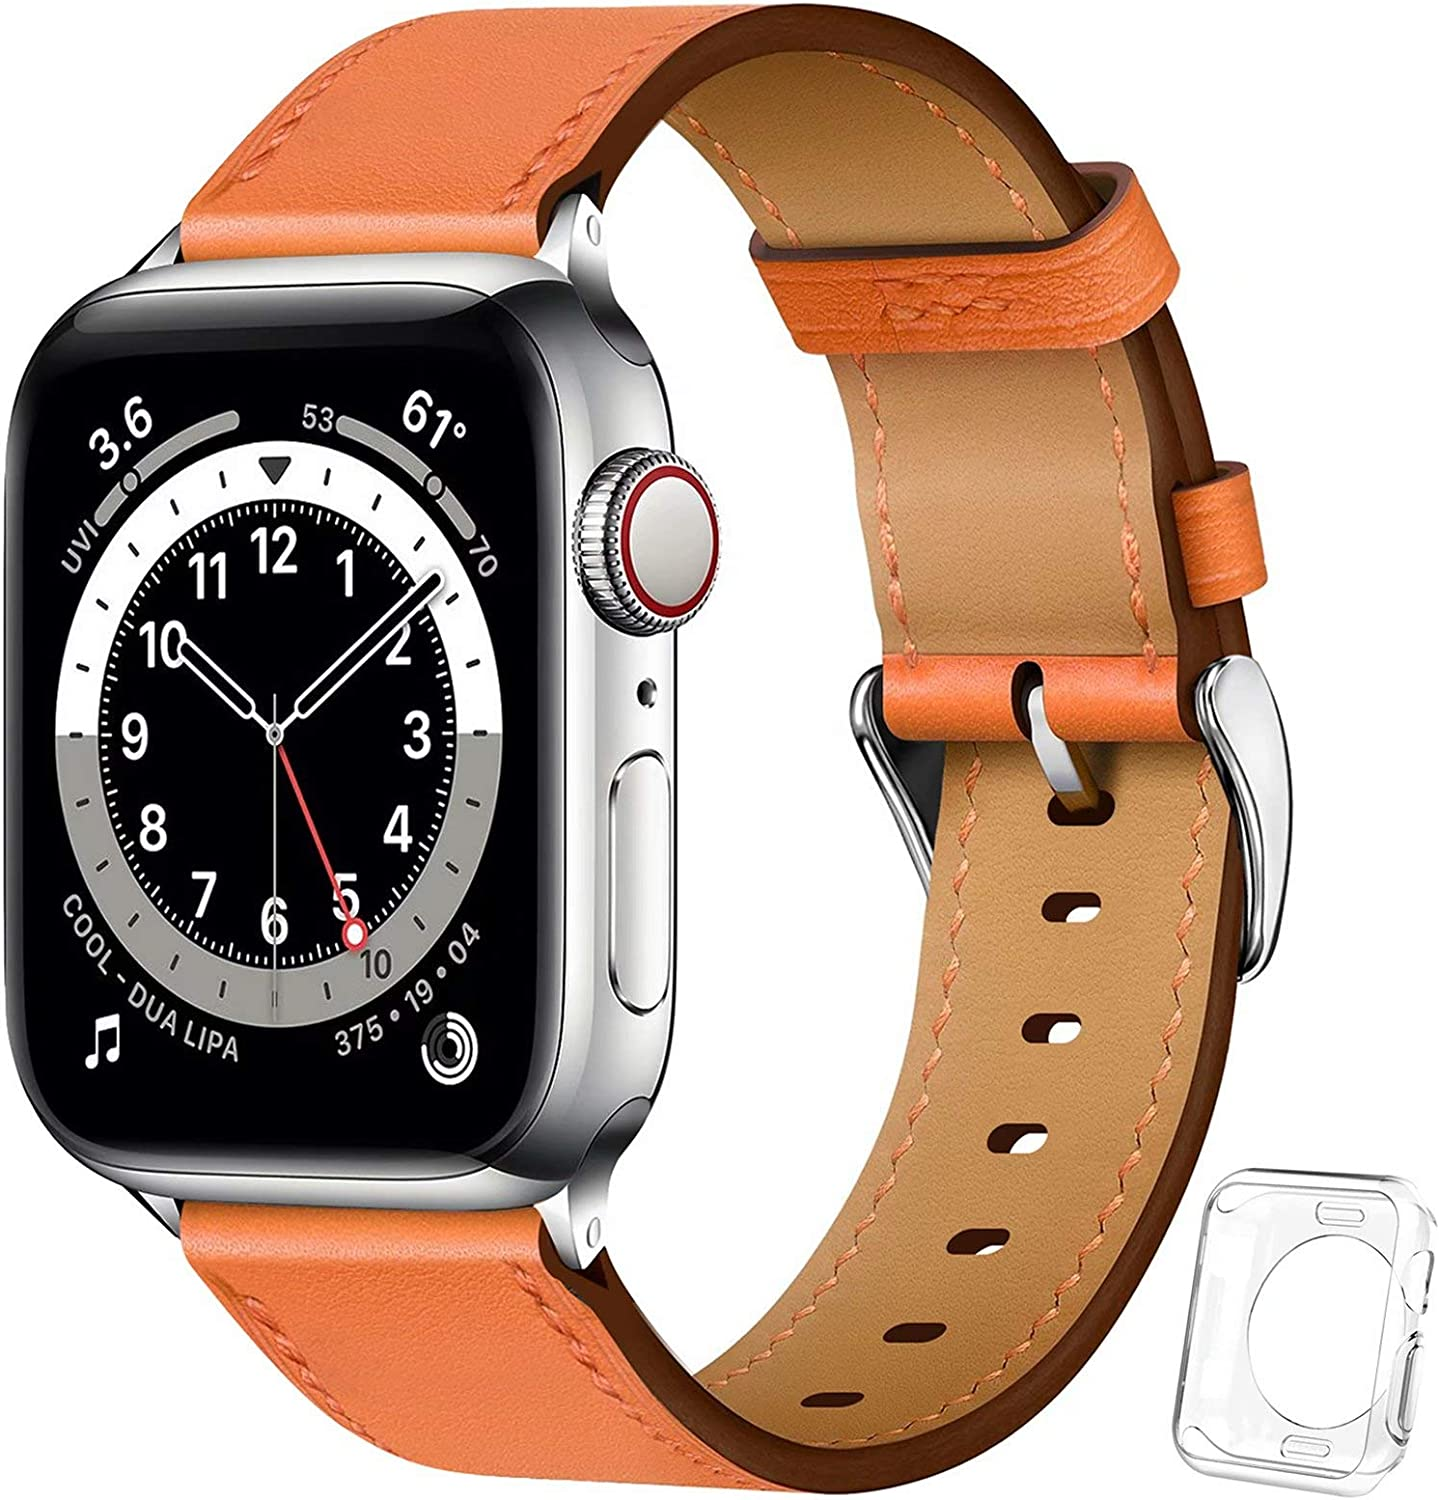 ADWLOF Bands Compatible for Apple Watch Band 38/40/42/44mm with Screen Protector Case,Genuine Grain Leather Replacement Strap with Protective Case for iWatch 6/5/4/3/2/1/SE